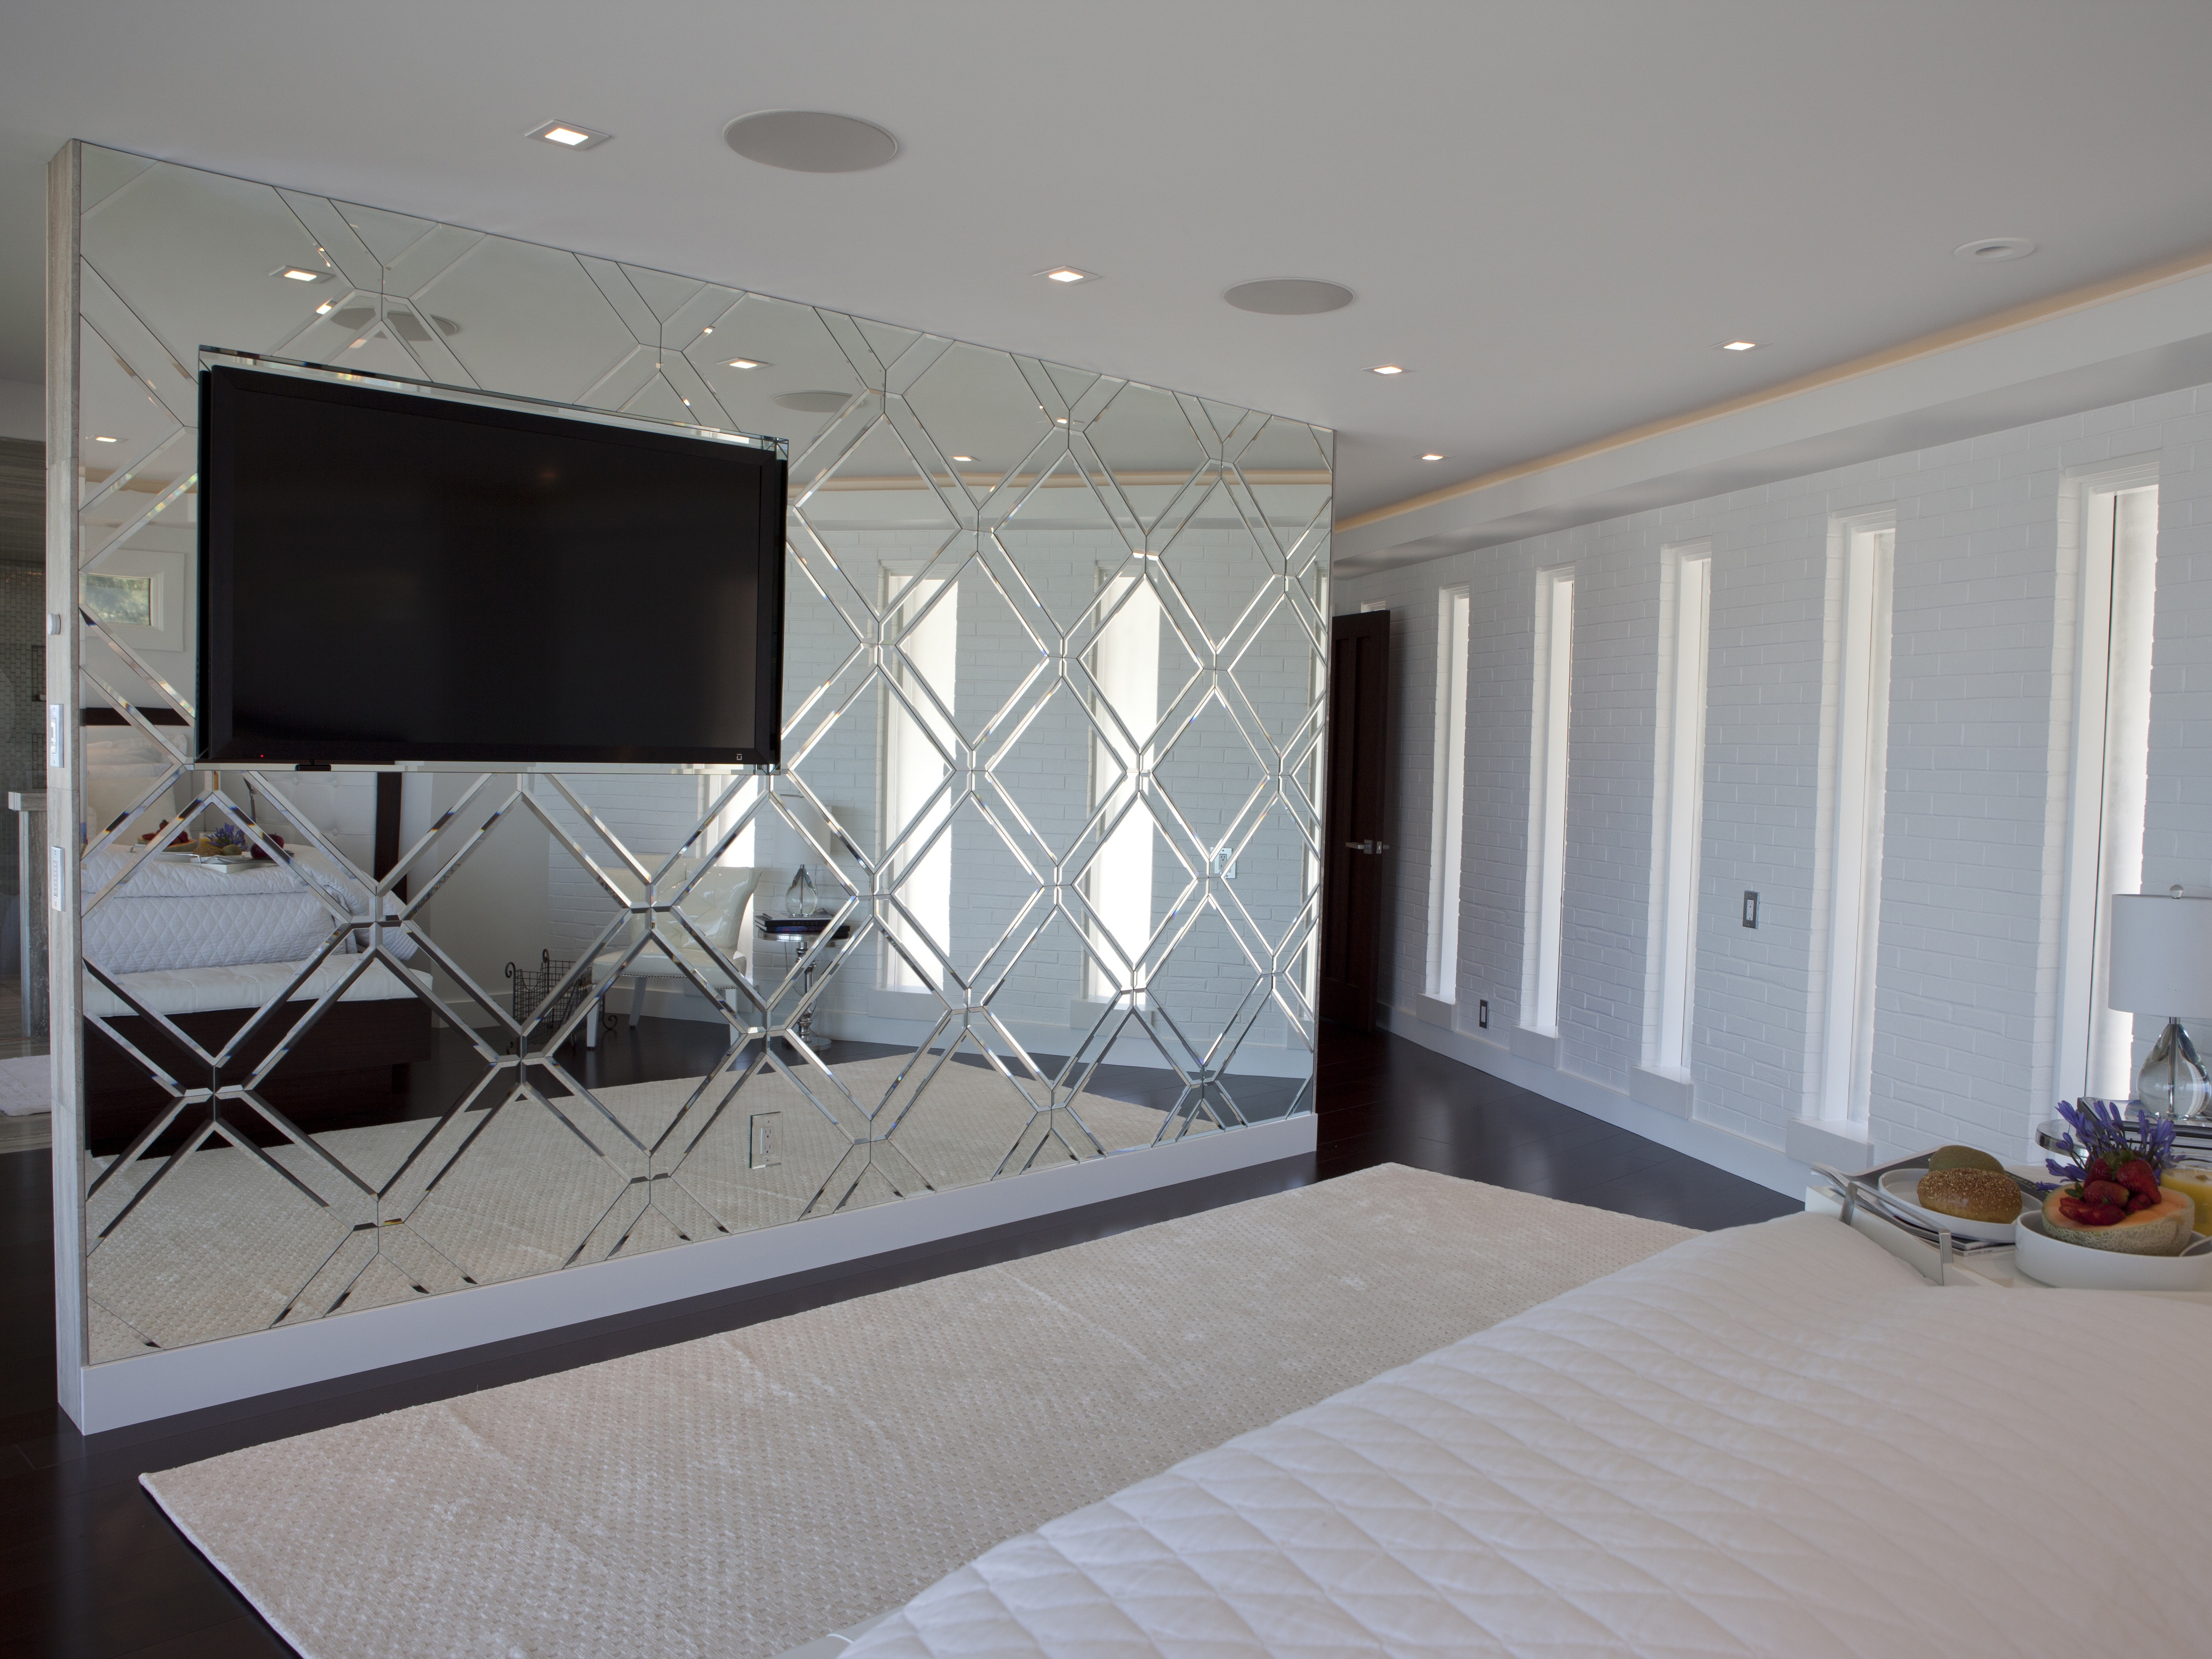 20 Bedroom Mirror Decor And Placement Ideas 18896